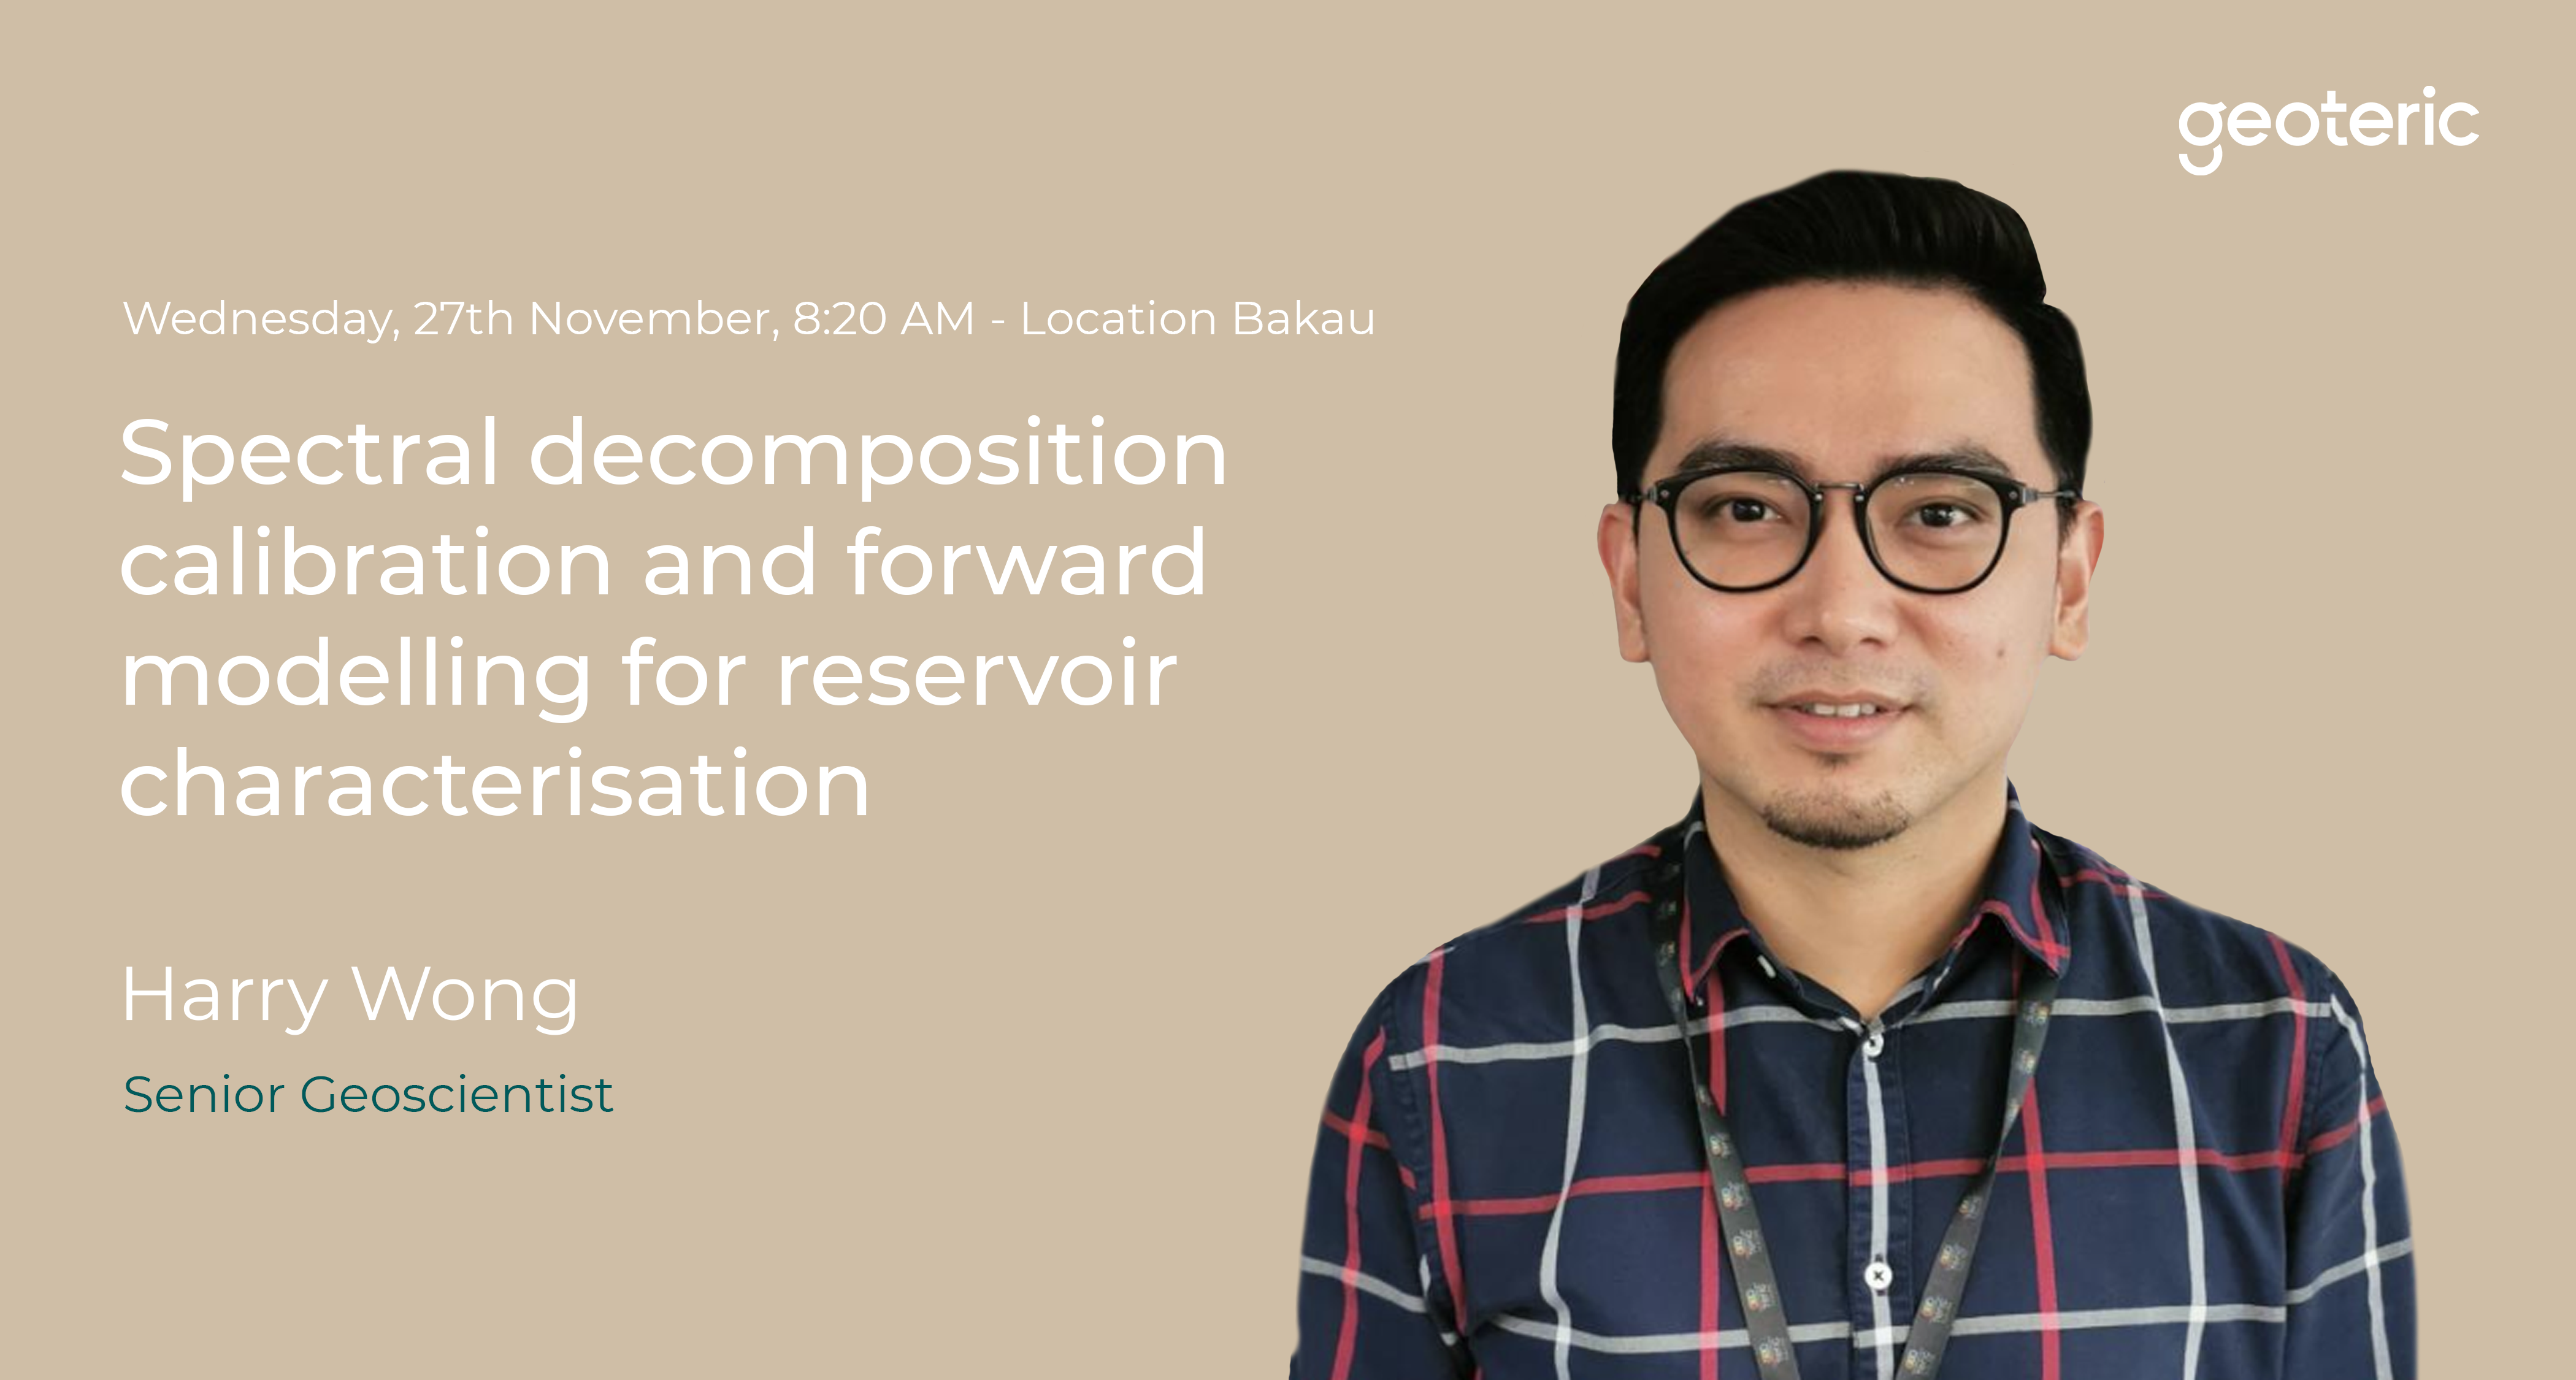 Joint Convention Yogyakarta, Harry Wong Spectral decomposition callibration and forward modelling for reservoir characterisation Geoteric